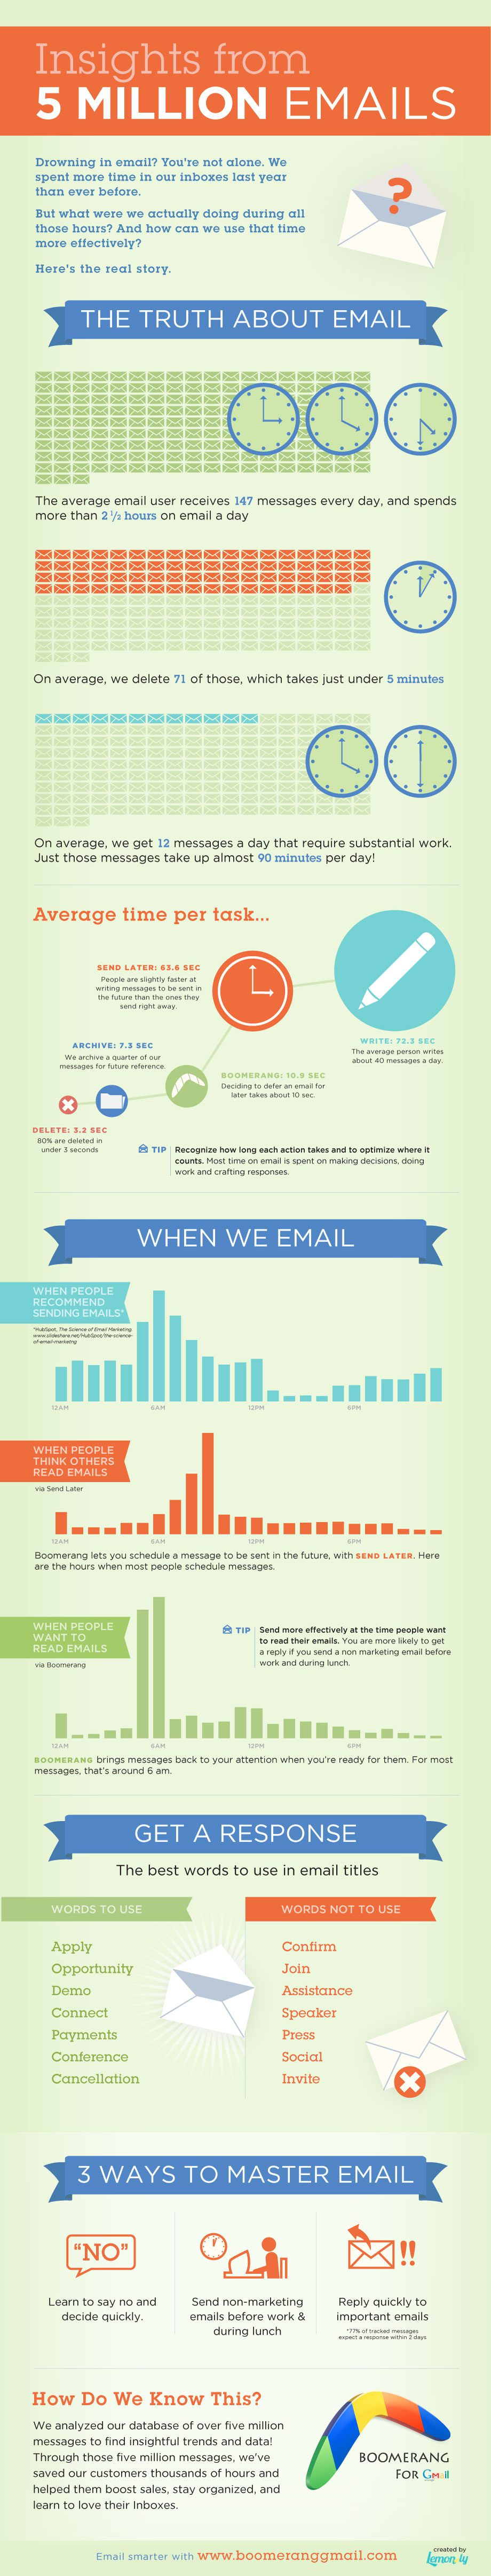 Insights About E-Mails